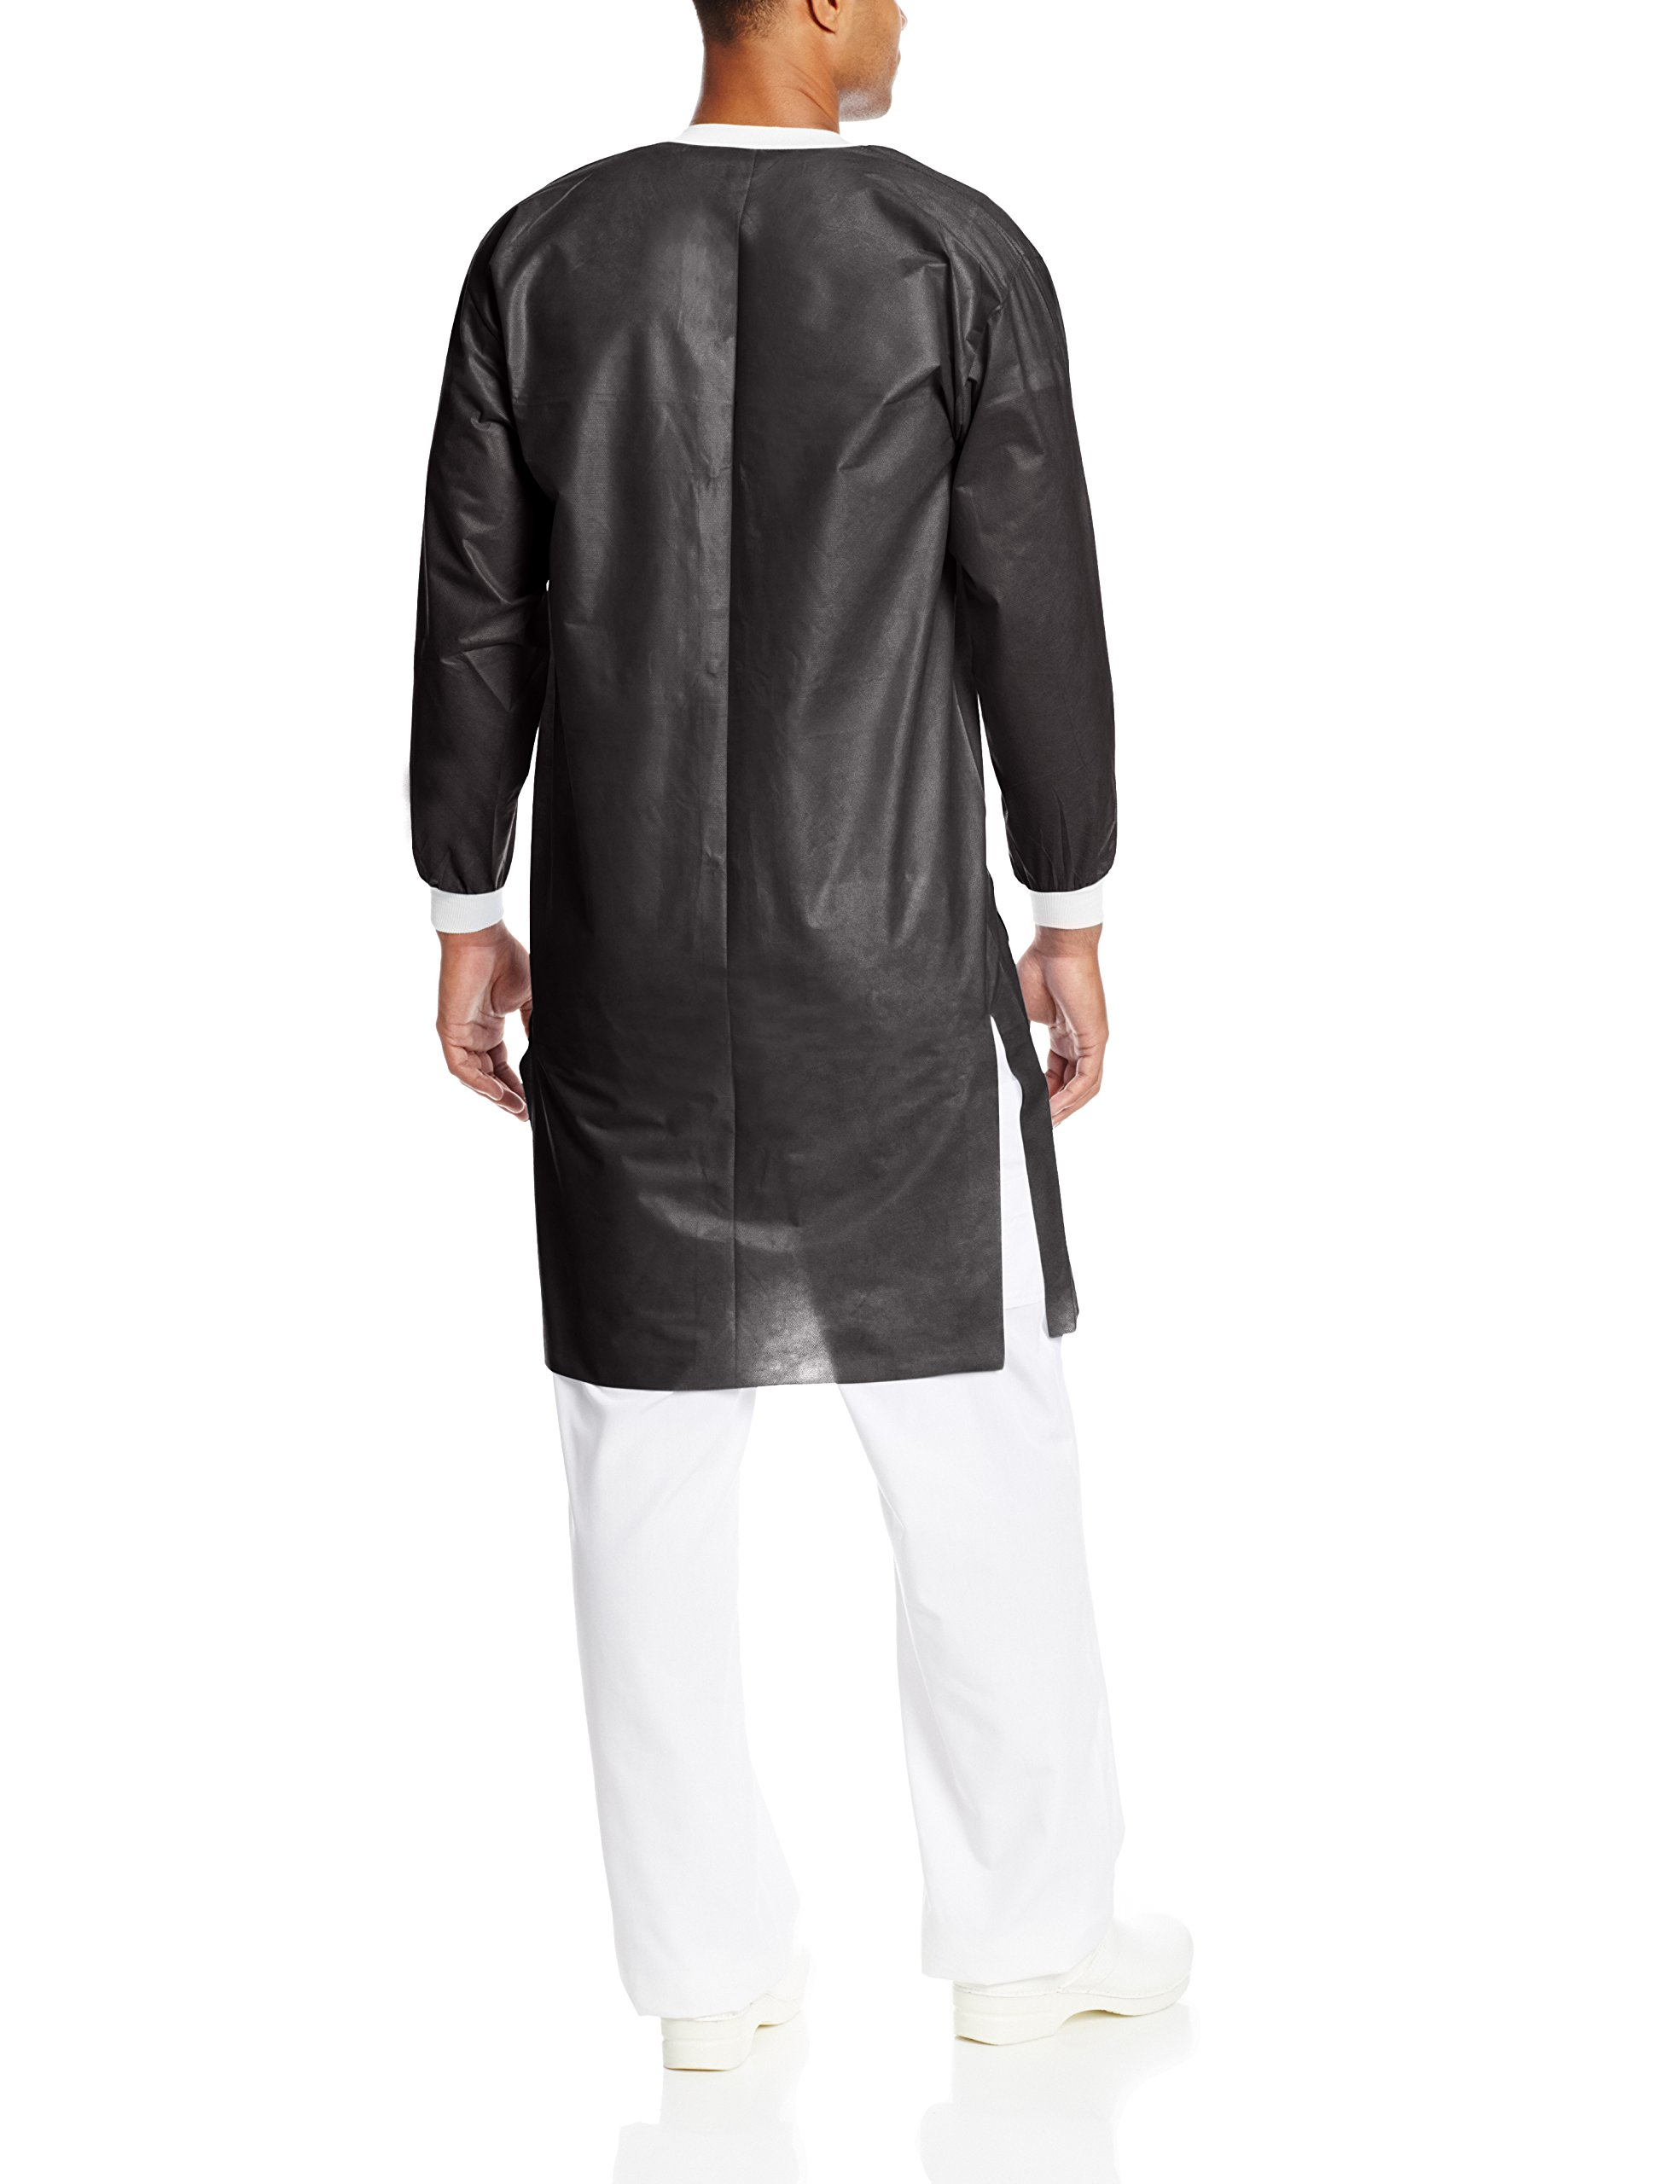 ValuMax 3660BK2XL Extra-Safe, Wrinkle-Free, Noble Looking Disposable SMS Knee Length Lab Coat, Black, 2XL, Pack of 10 by Valumax (Image #2)